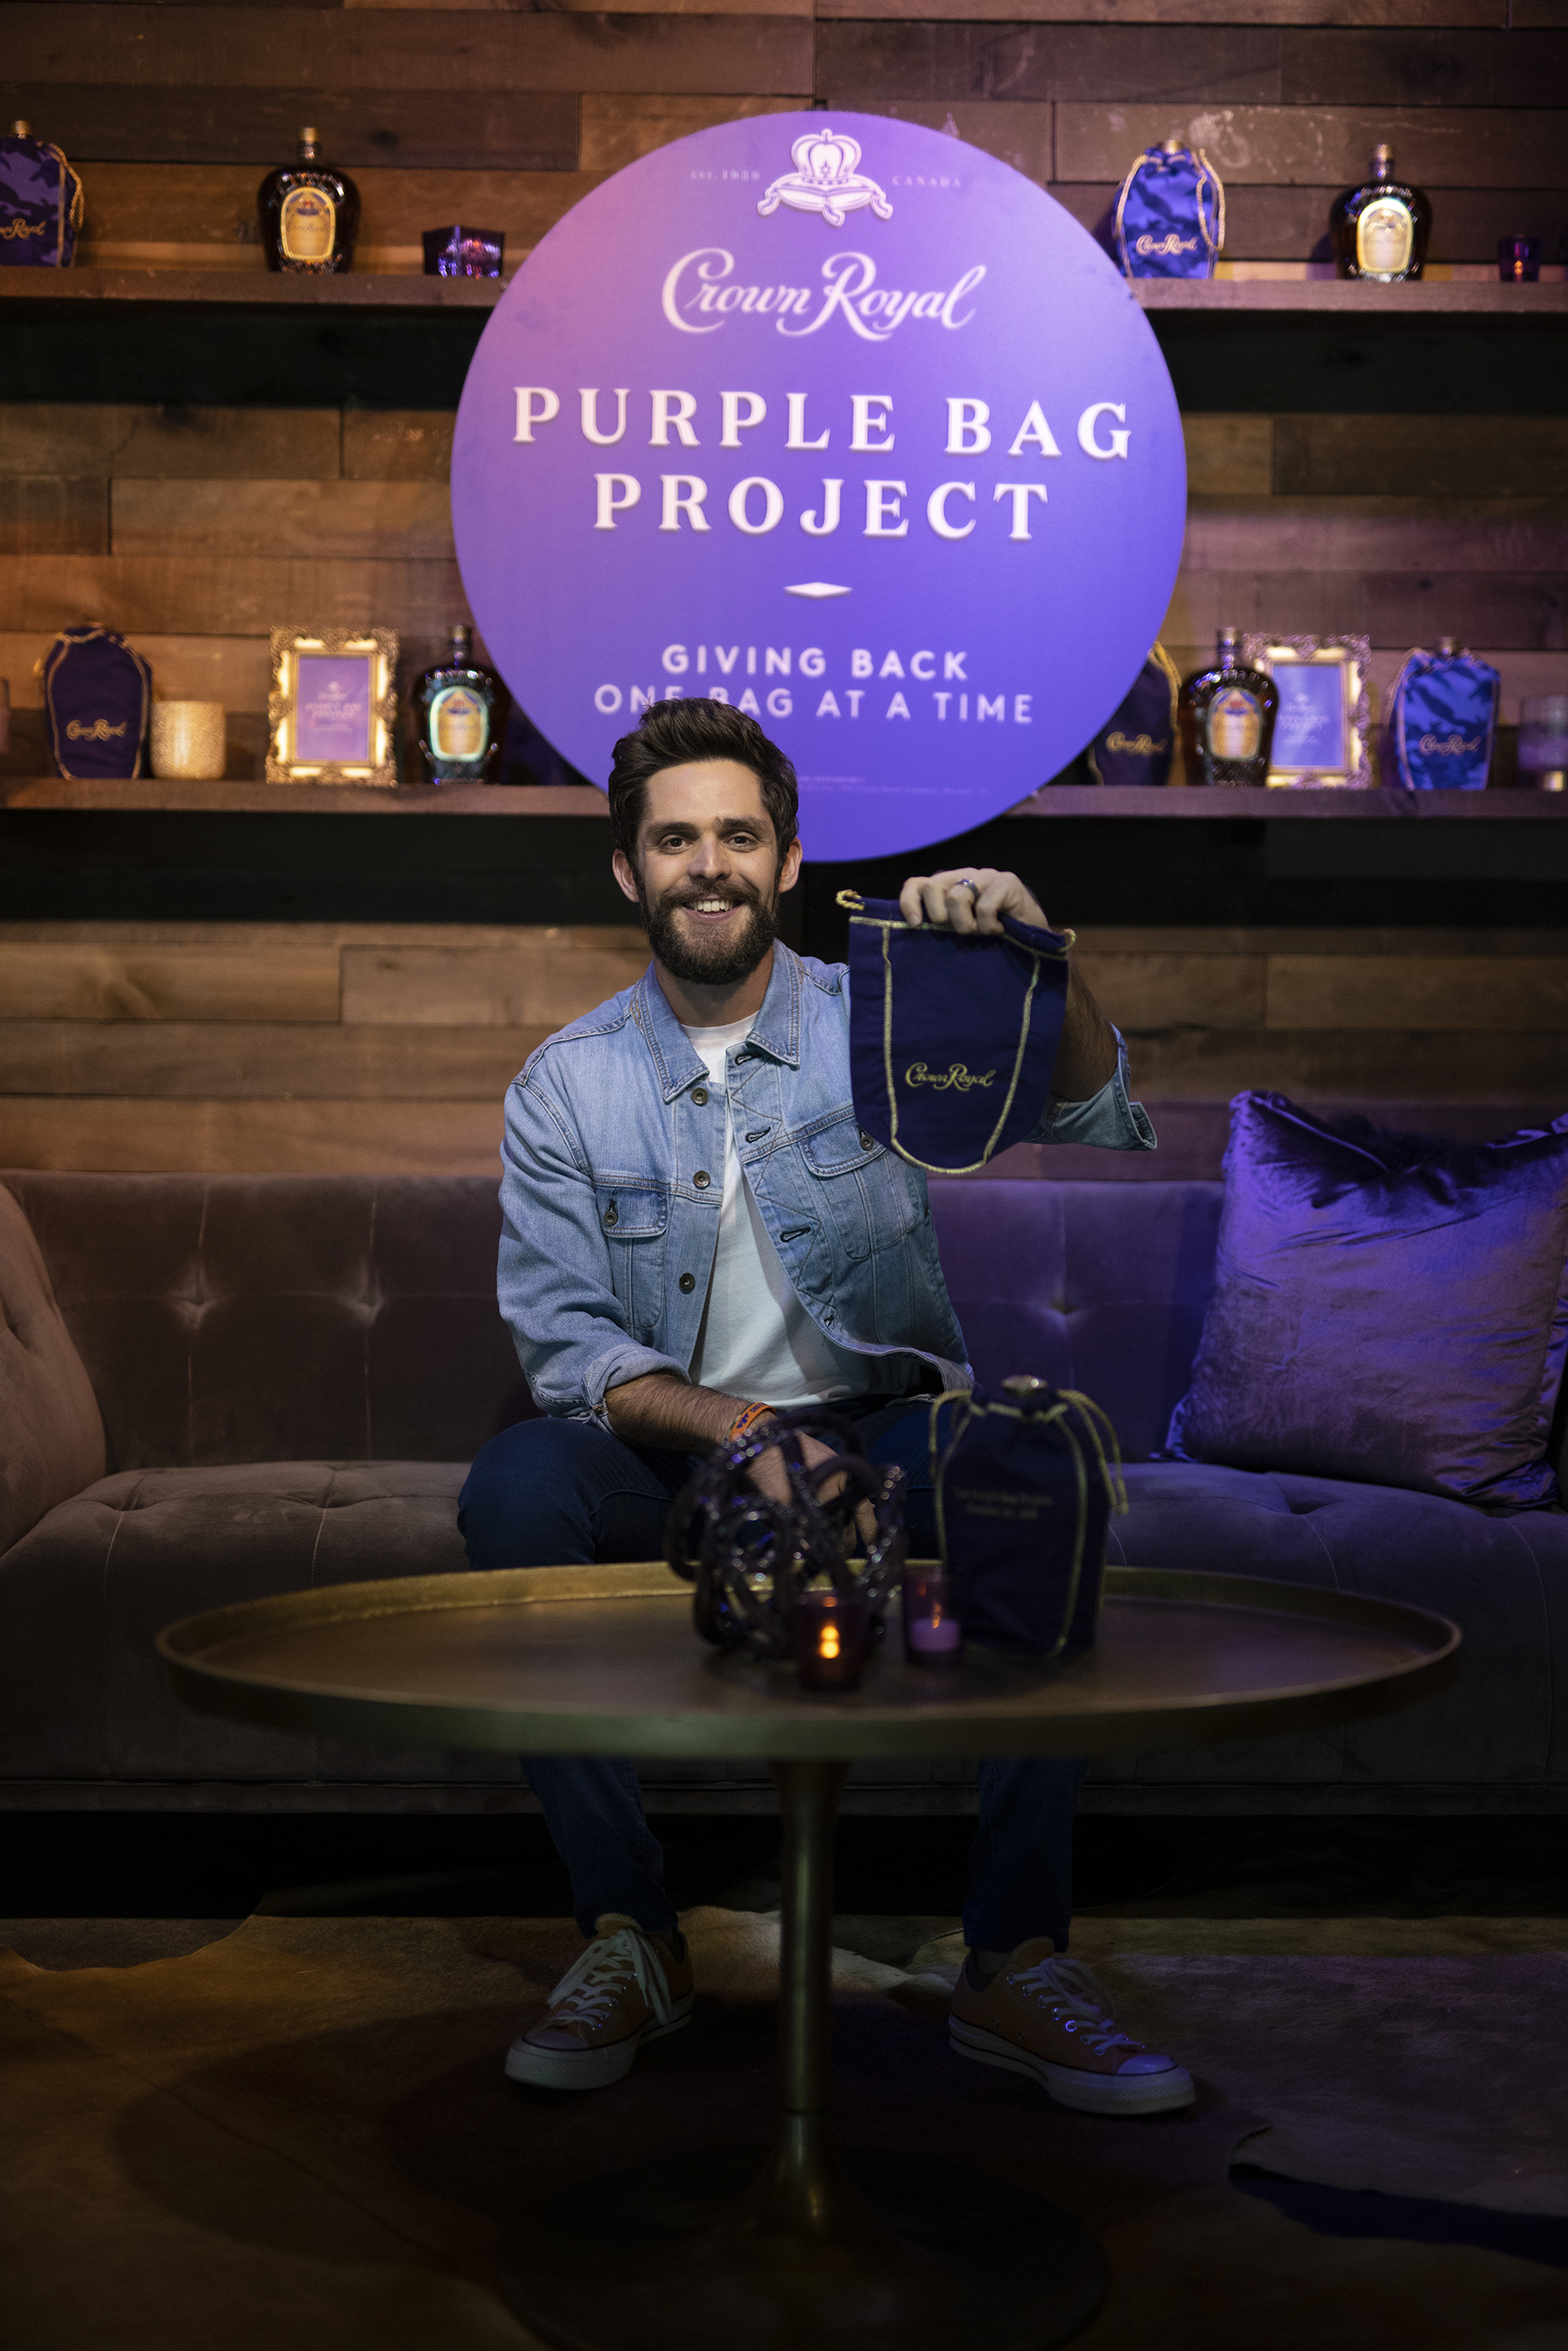 Crown Royal Joins Forces with Thomas Rhett to Launch The Purple Bag Project